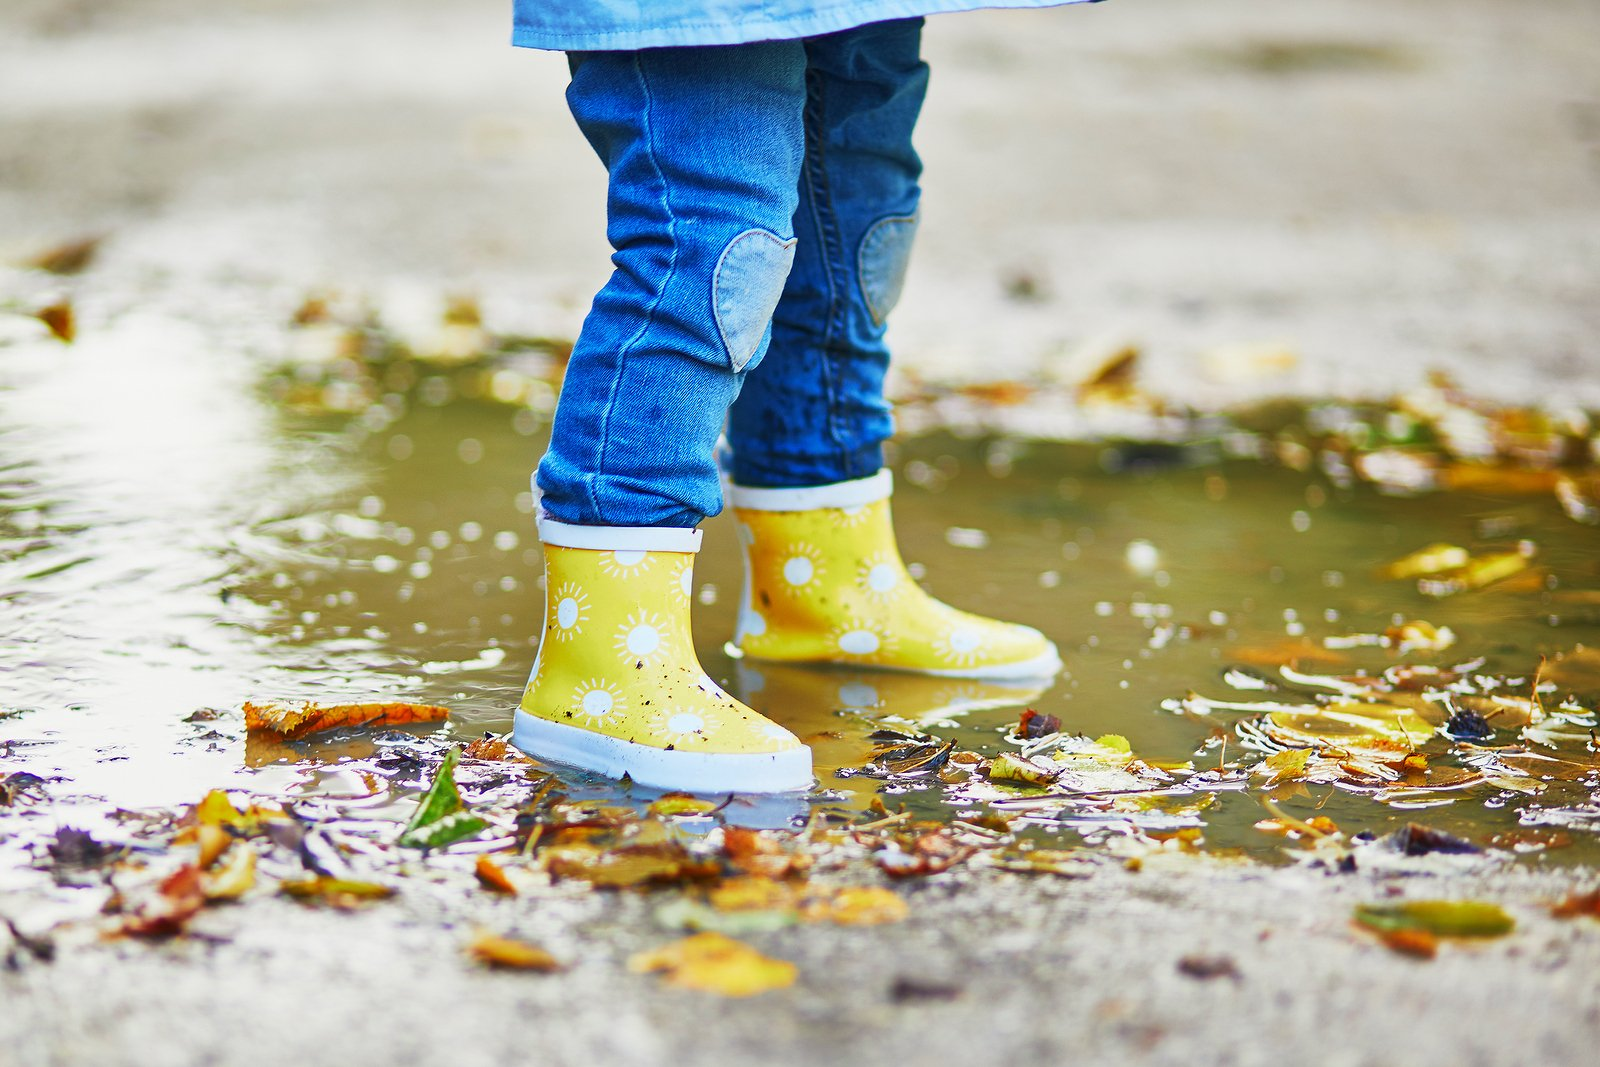 kid with rain boot standing in puddle